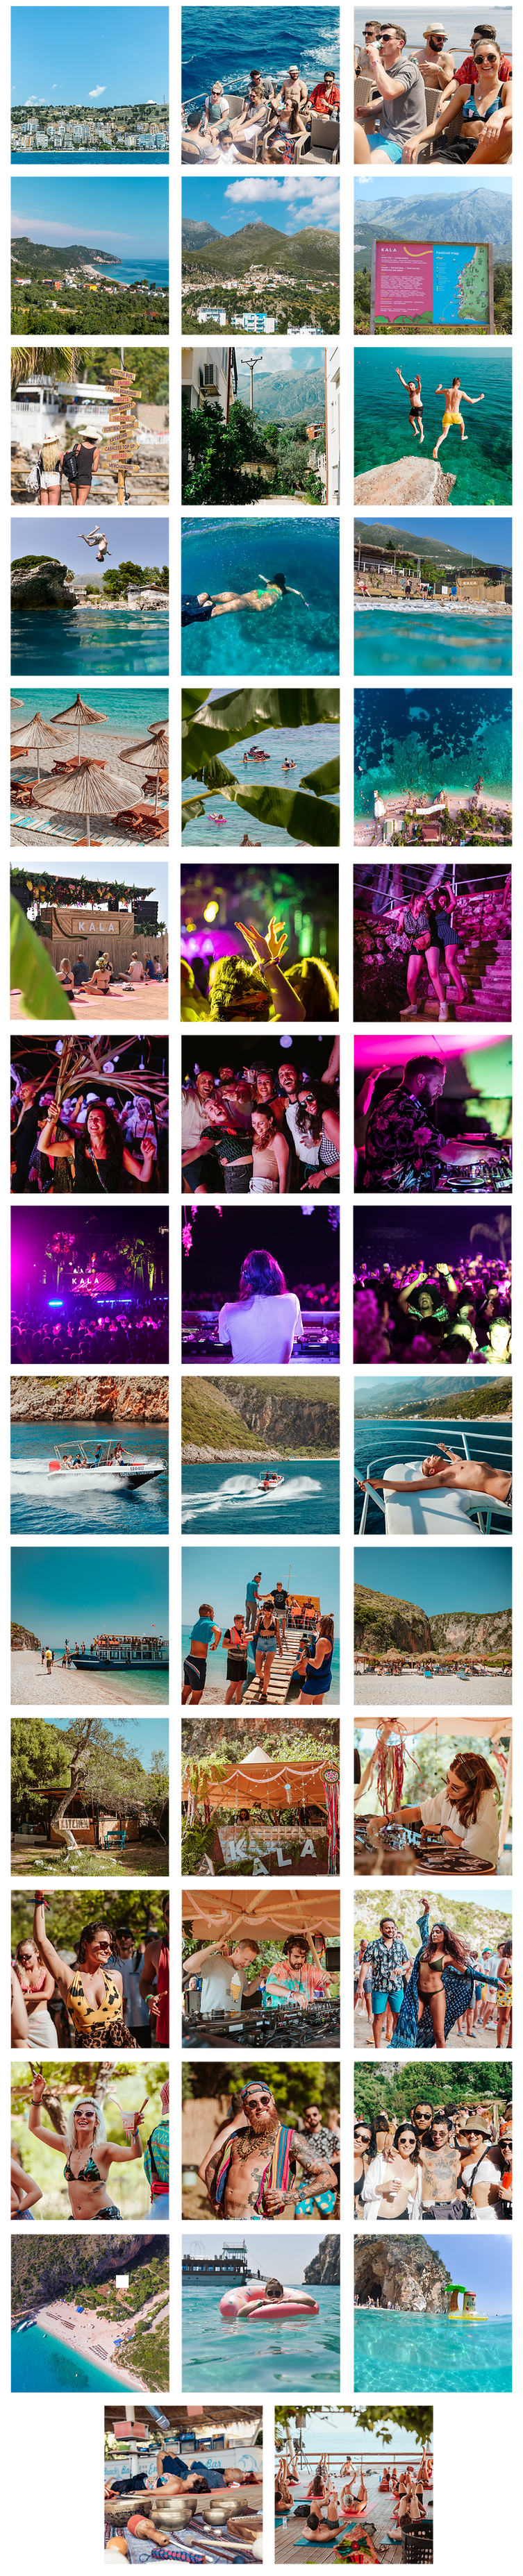 Gallery-02.png